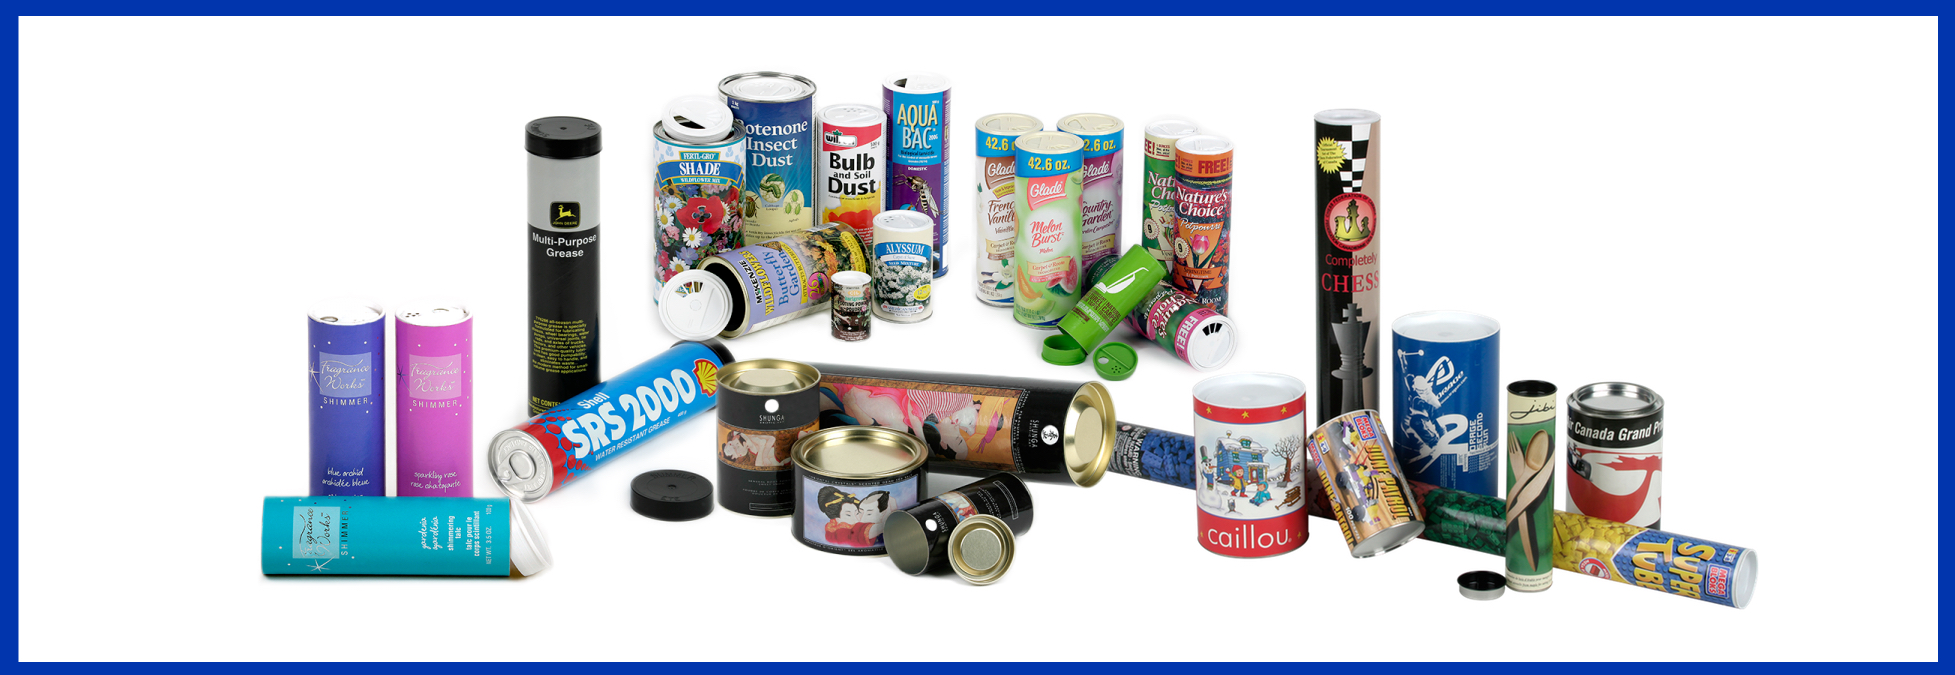 canfab-cans-latas